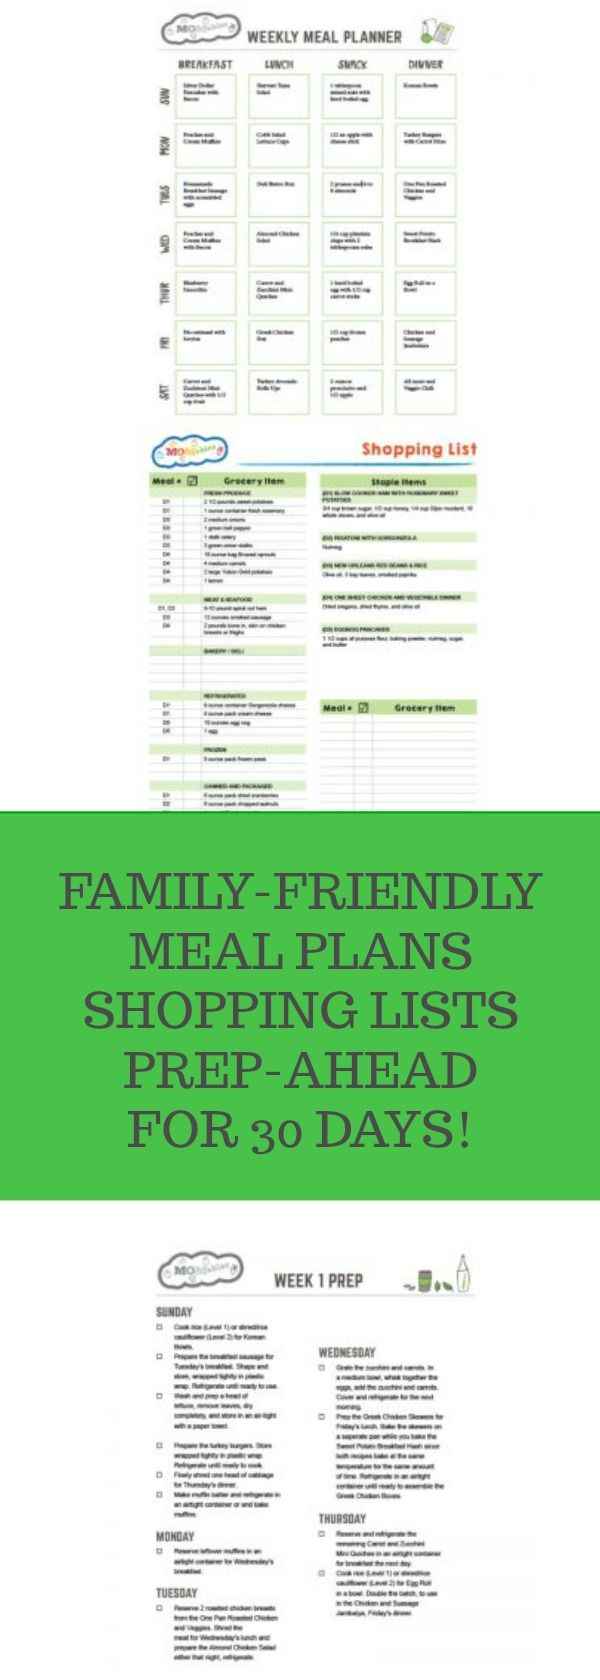 Family friendly whole 30 like program for busy parents! Eat real foods with your family for 30 days and eliminate processed foods and sugars with your kids. Done for you meal plans, shopping lists, and prep sheets to help you execute like a pro! Made by a mom for other moms. Gluten-free, dairy-free, paleo, grain-free. Everything you need to get started!